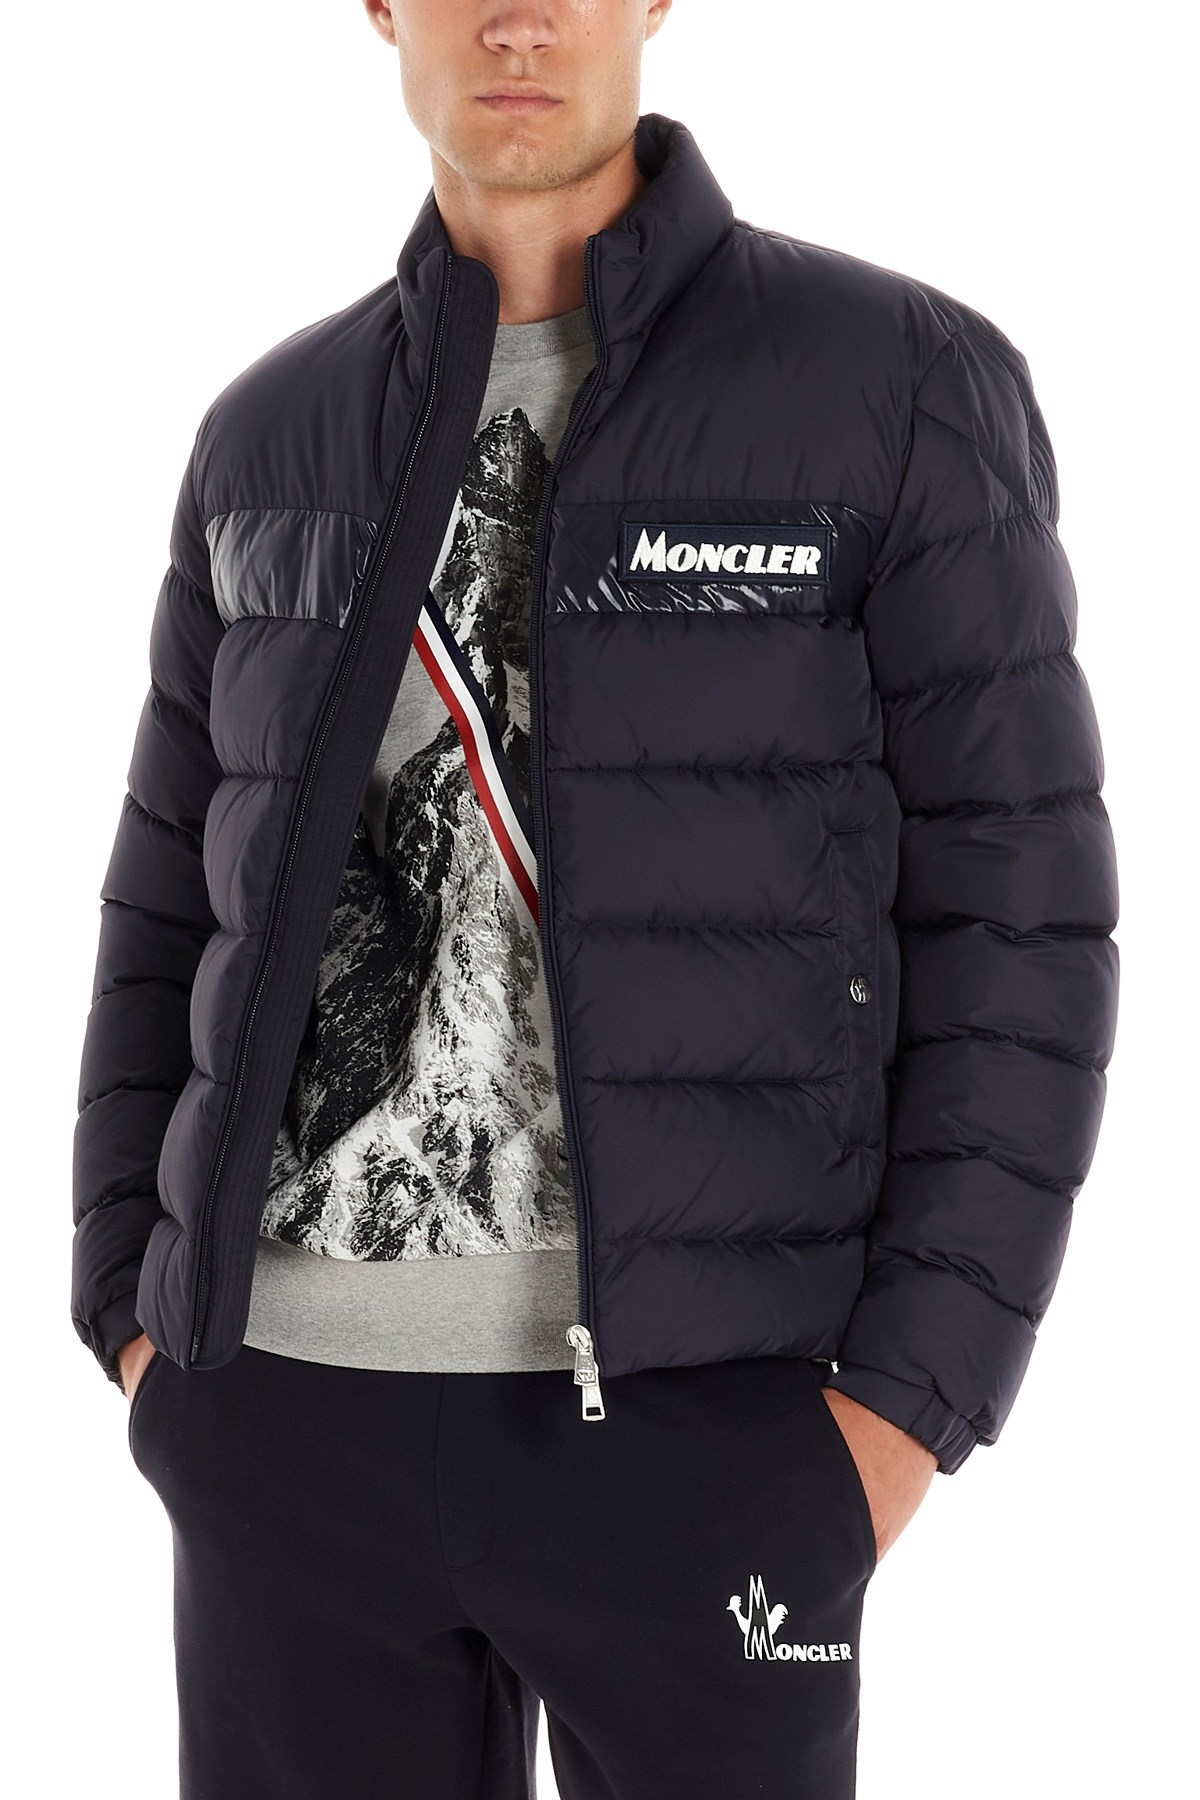 960082812 moncler 'Servieres' down jacket available on julian-fashion.com - 99424